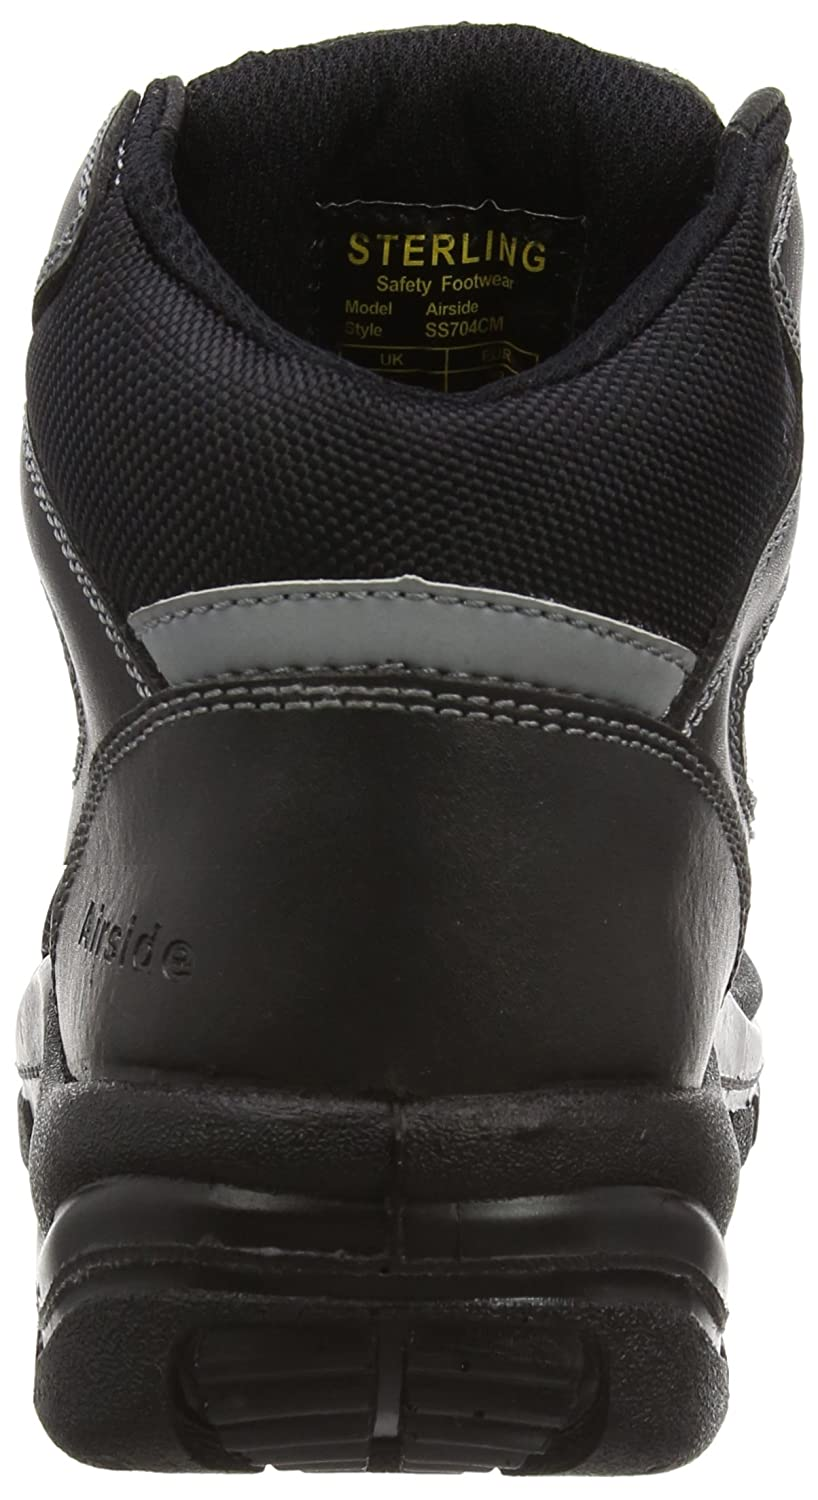 37067749045 Airside Unisex Adults Ss704Cm Safety Boots, Black (Black), 10 UK